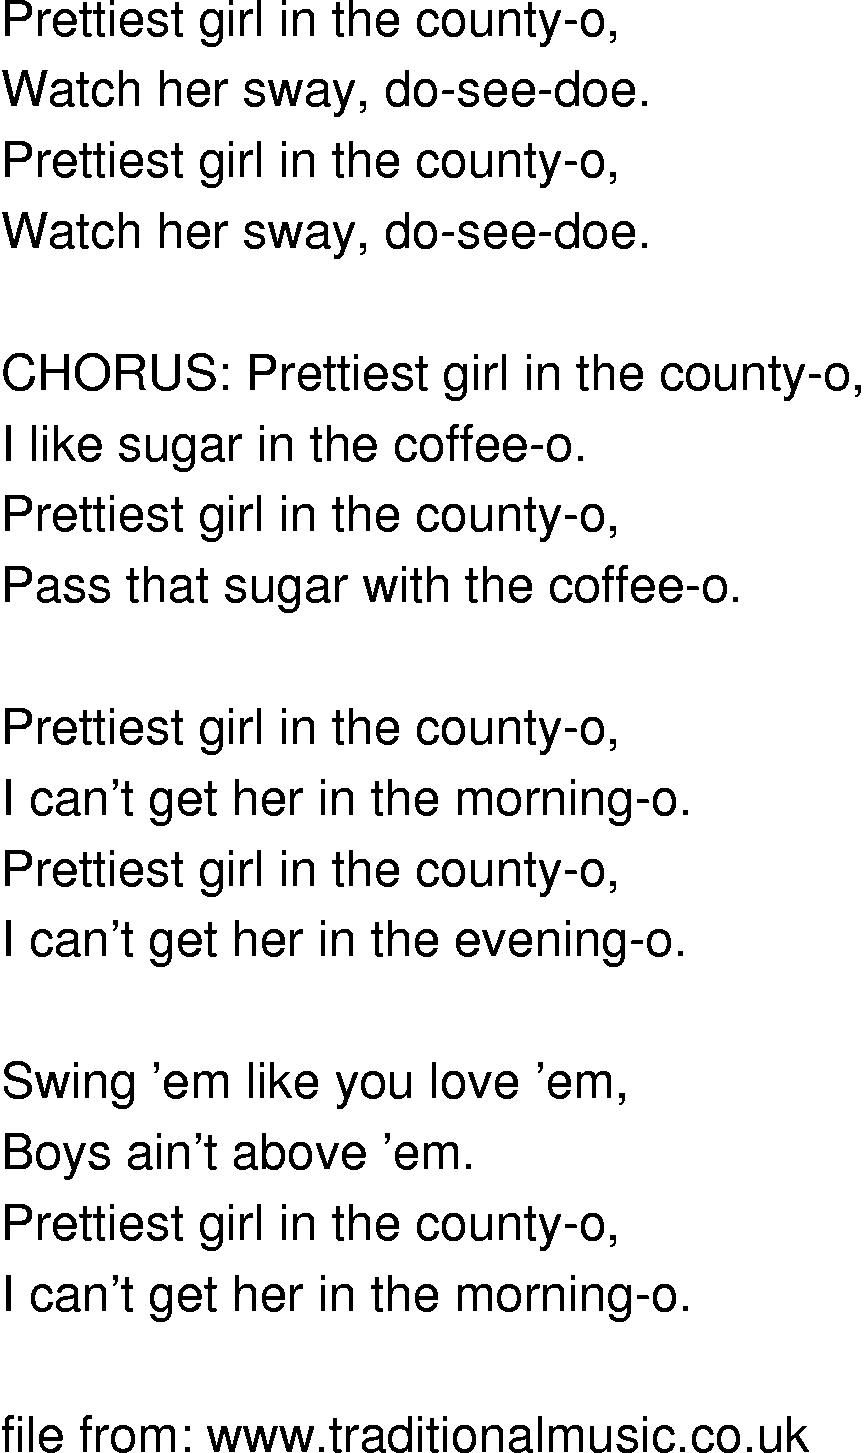 Most beautiful song lyrics